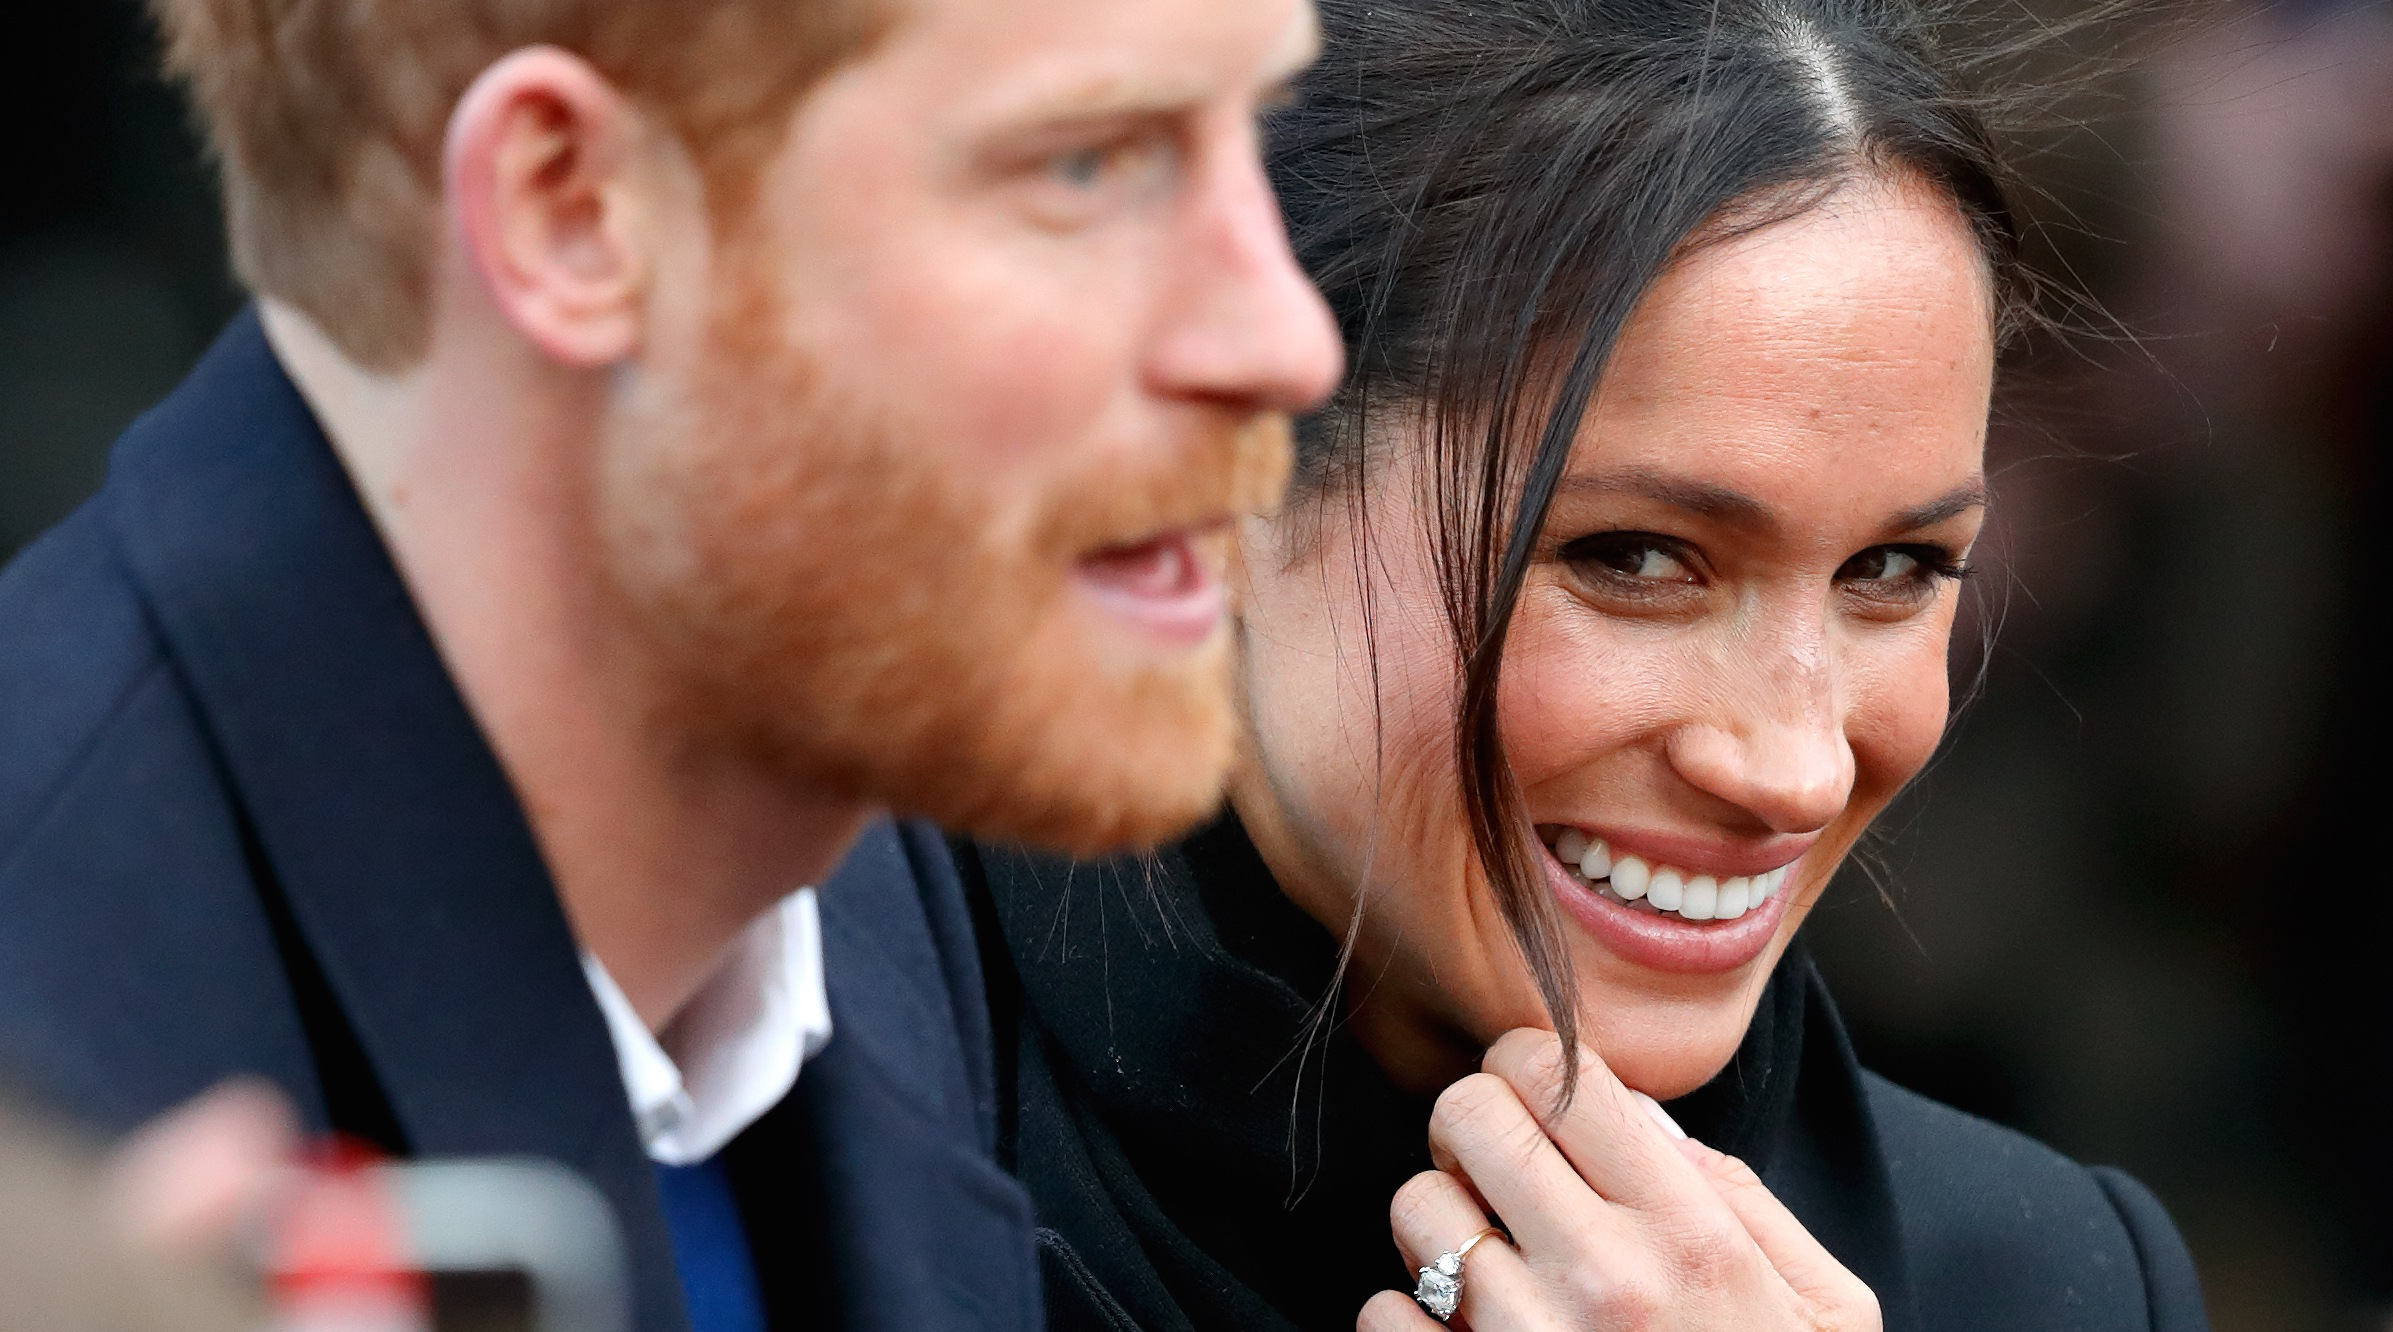 as prince harry meghan markle s wedding date nears more details are released sheknows sheknows